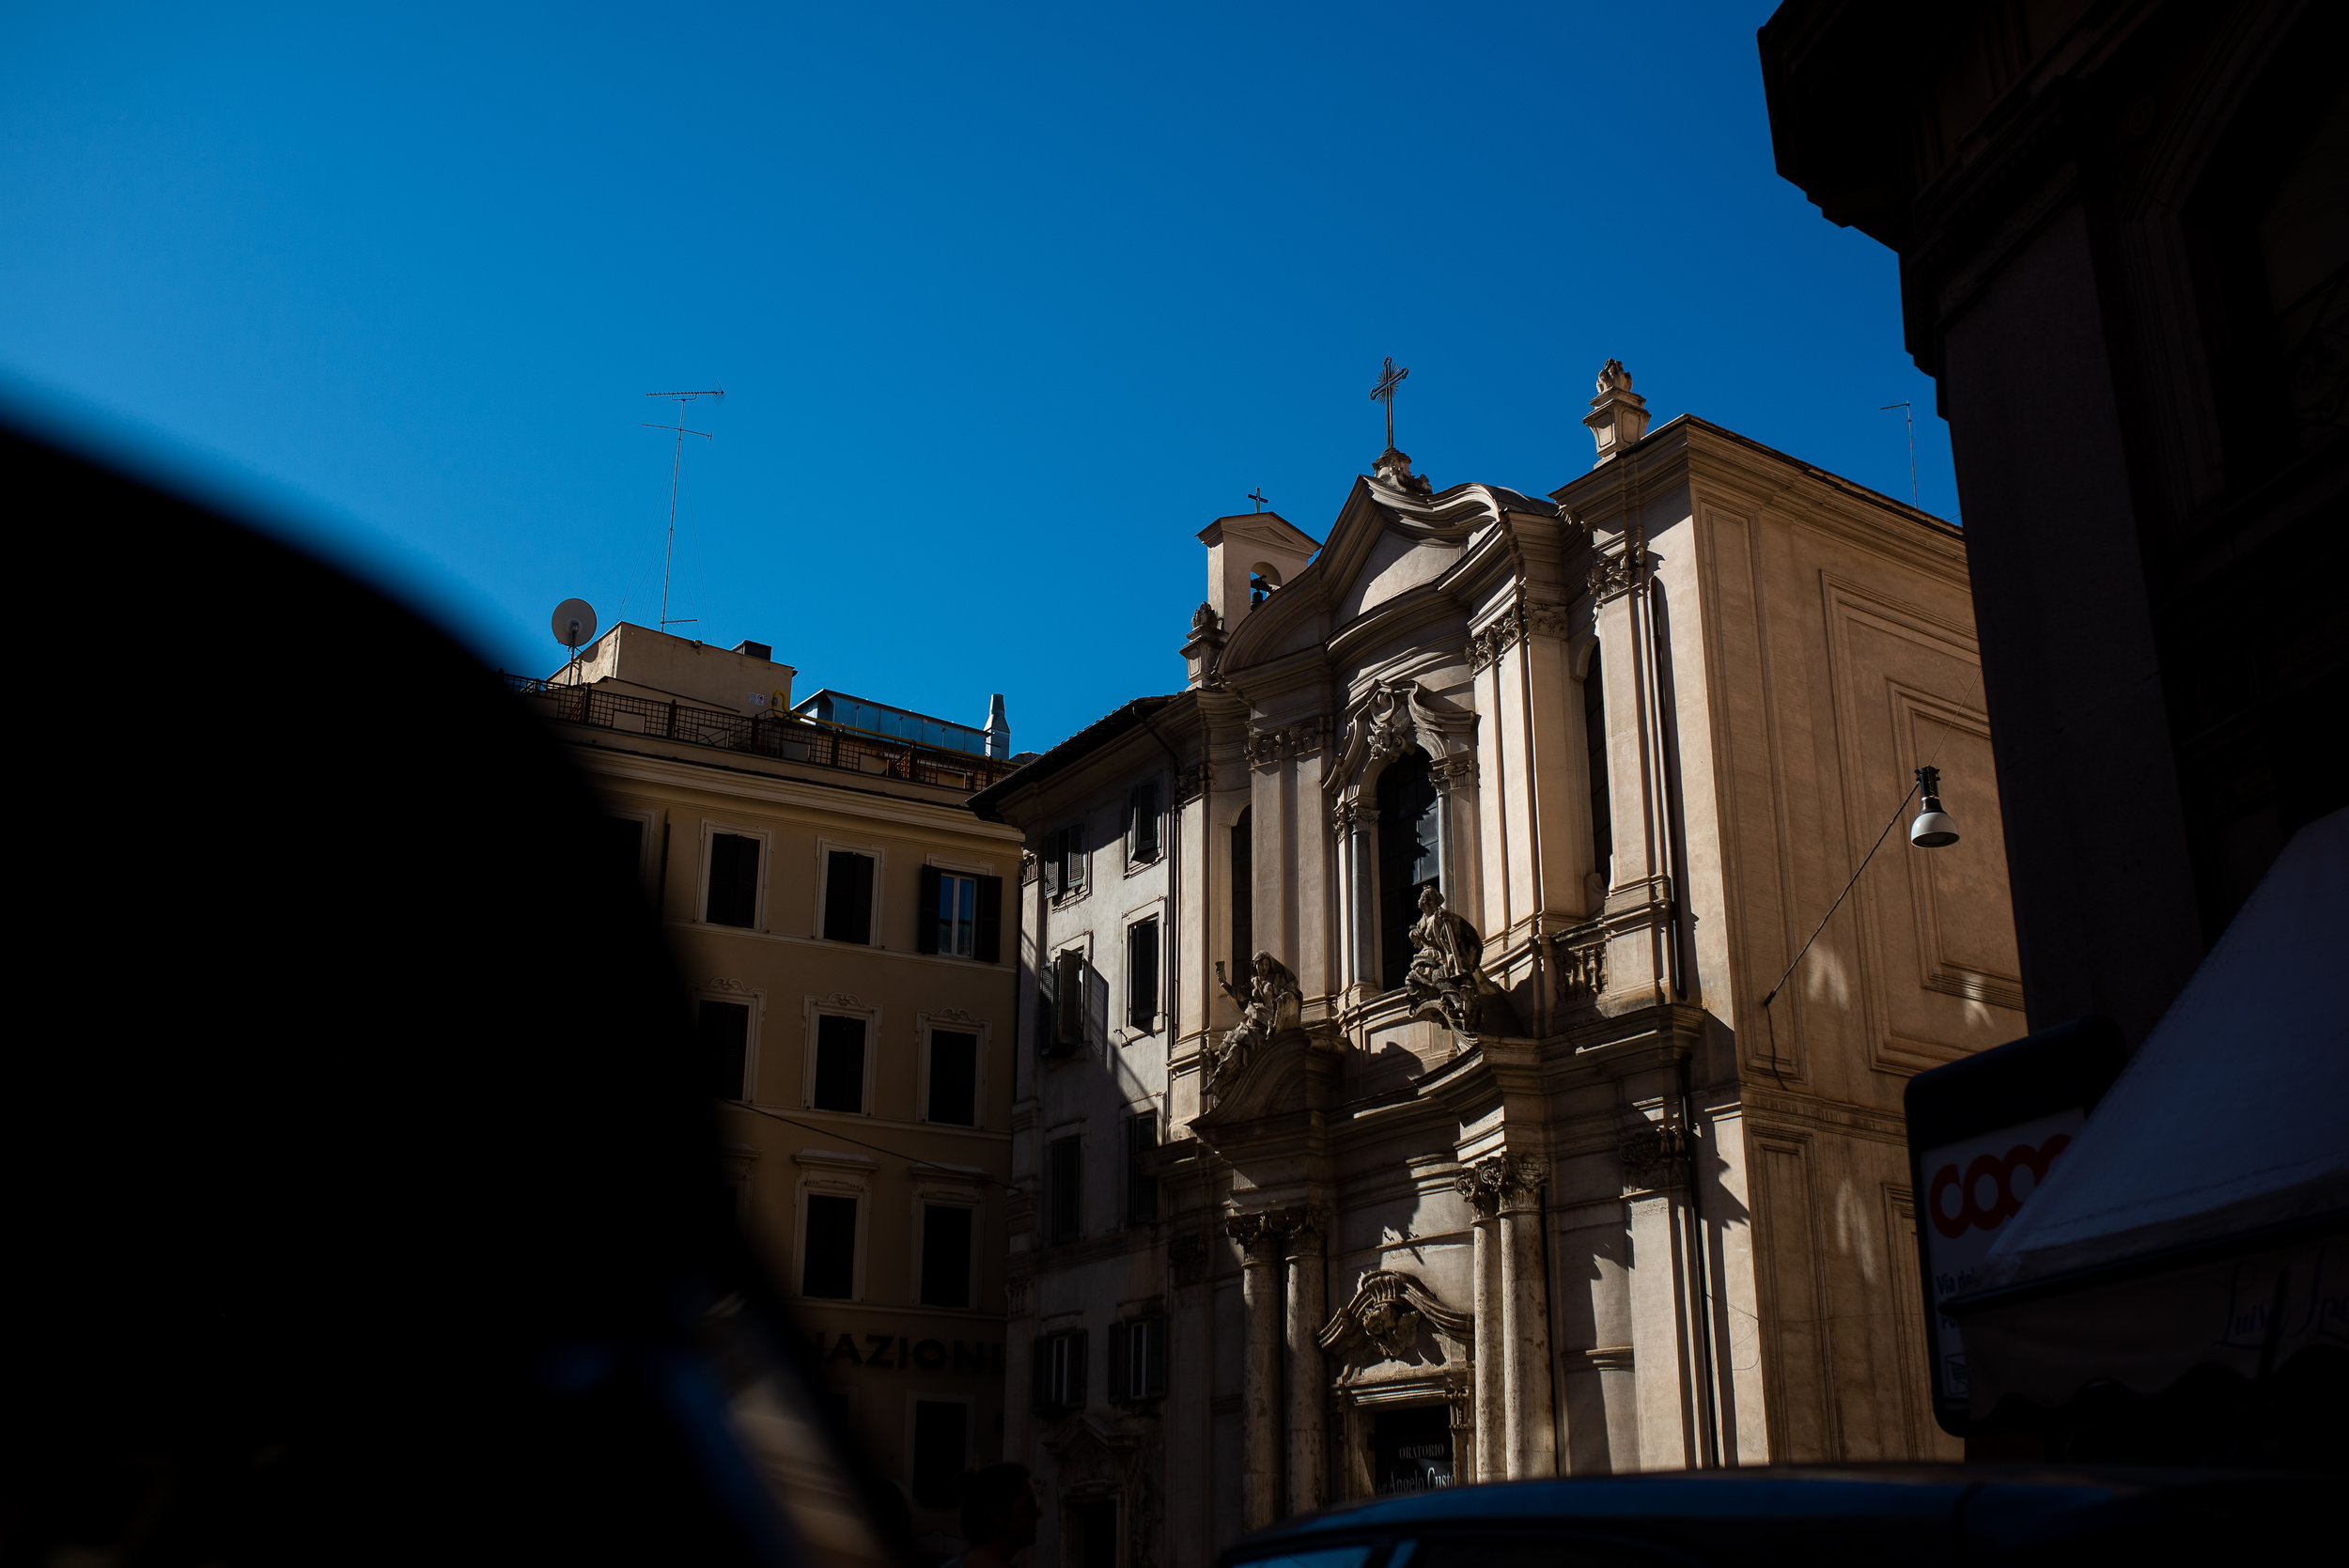 Rome-www.danielrobinsonphotography.co.uk-6.jpg